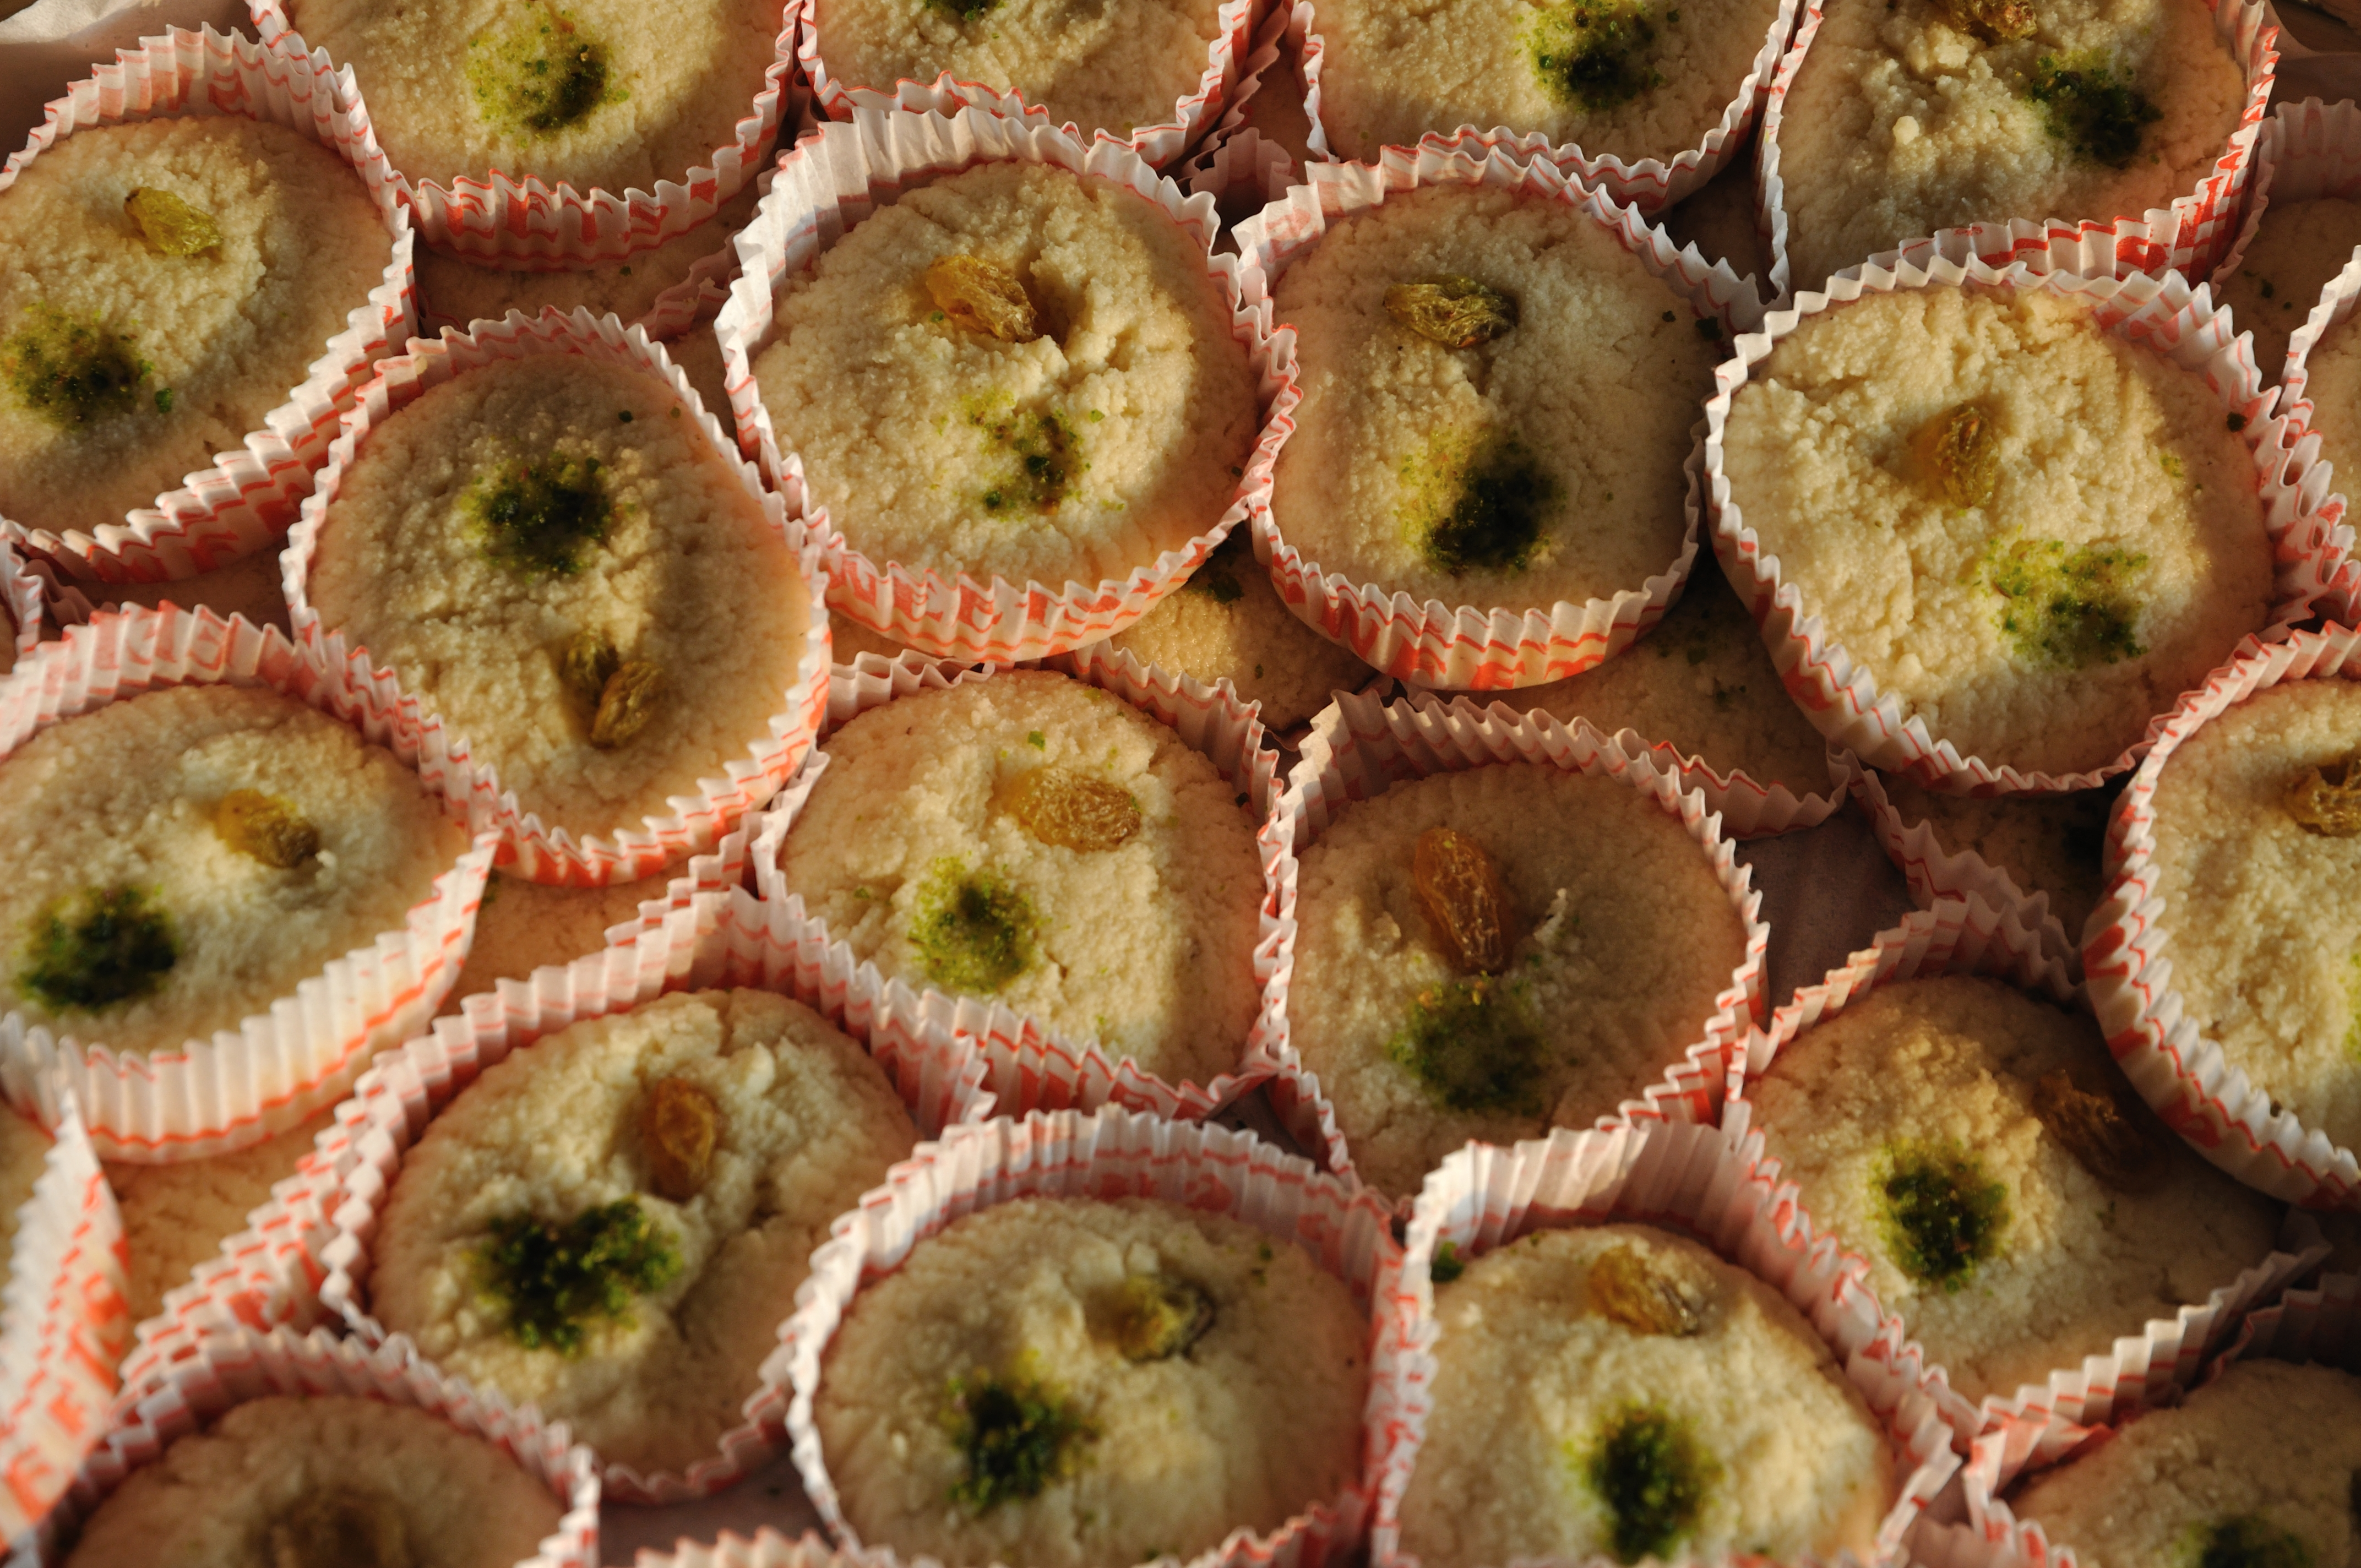 Sandesh, a typical Bengali sweet